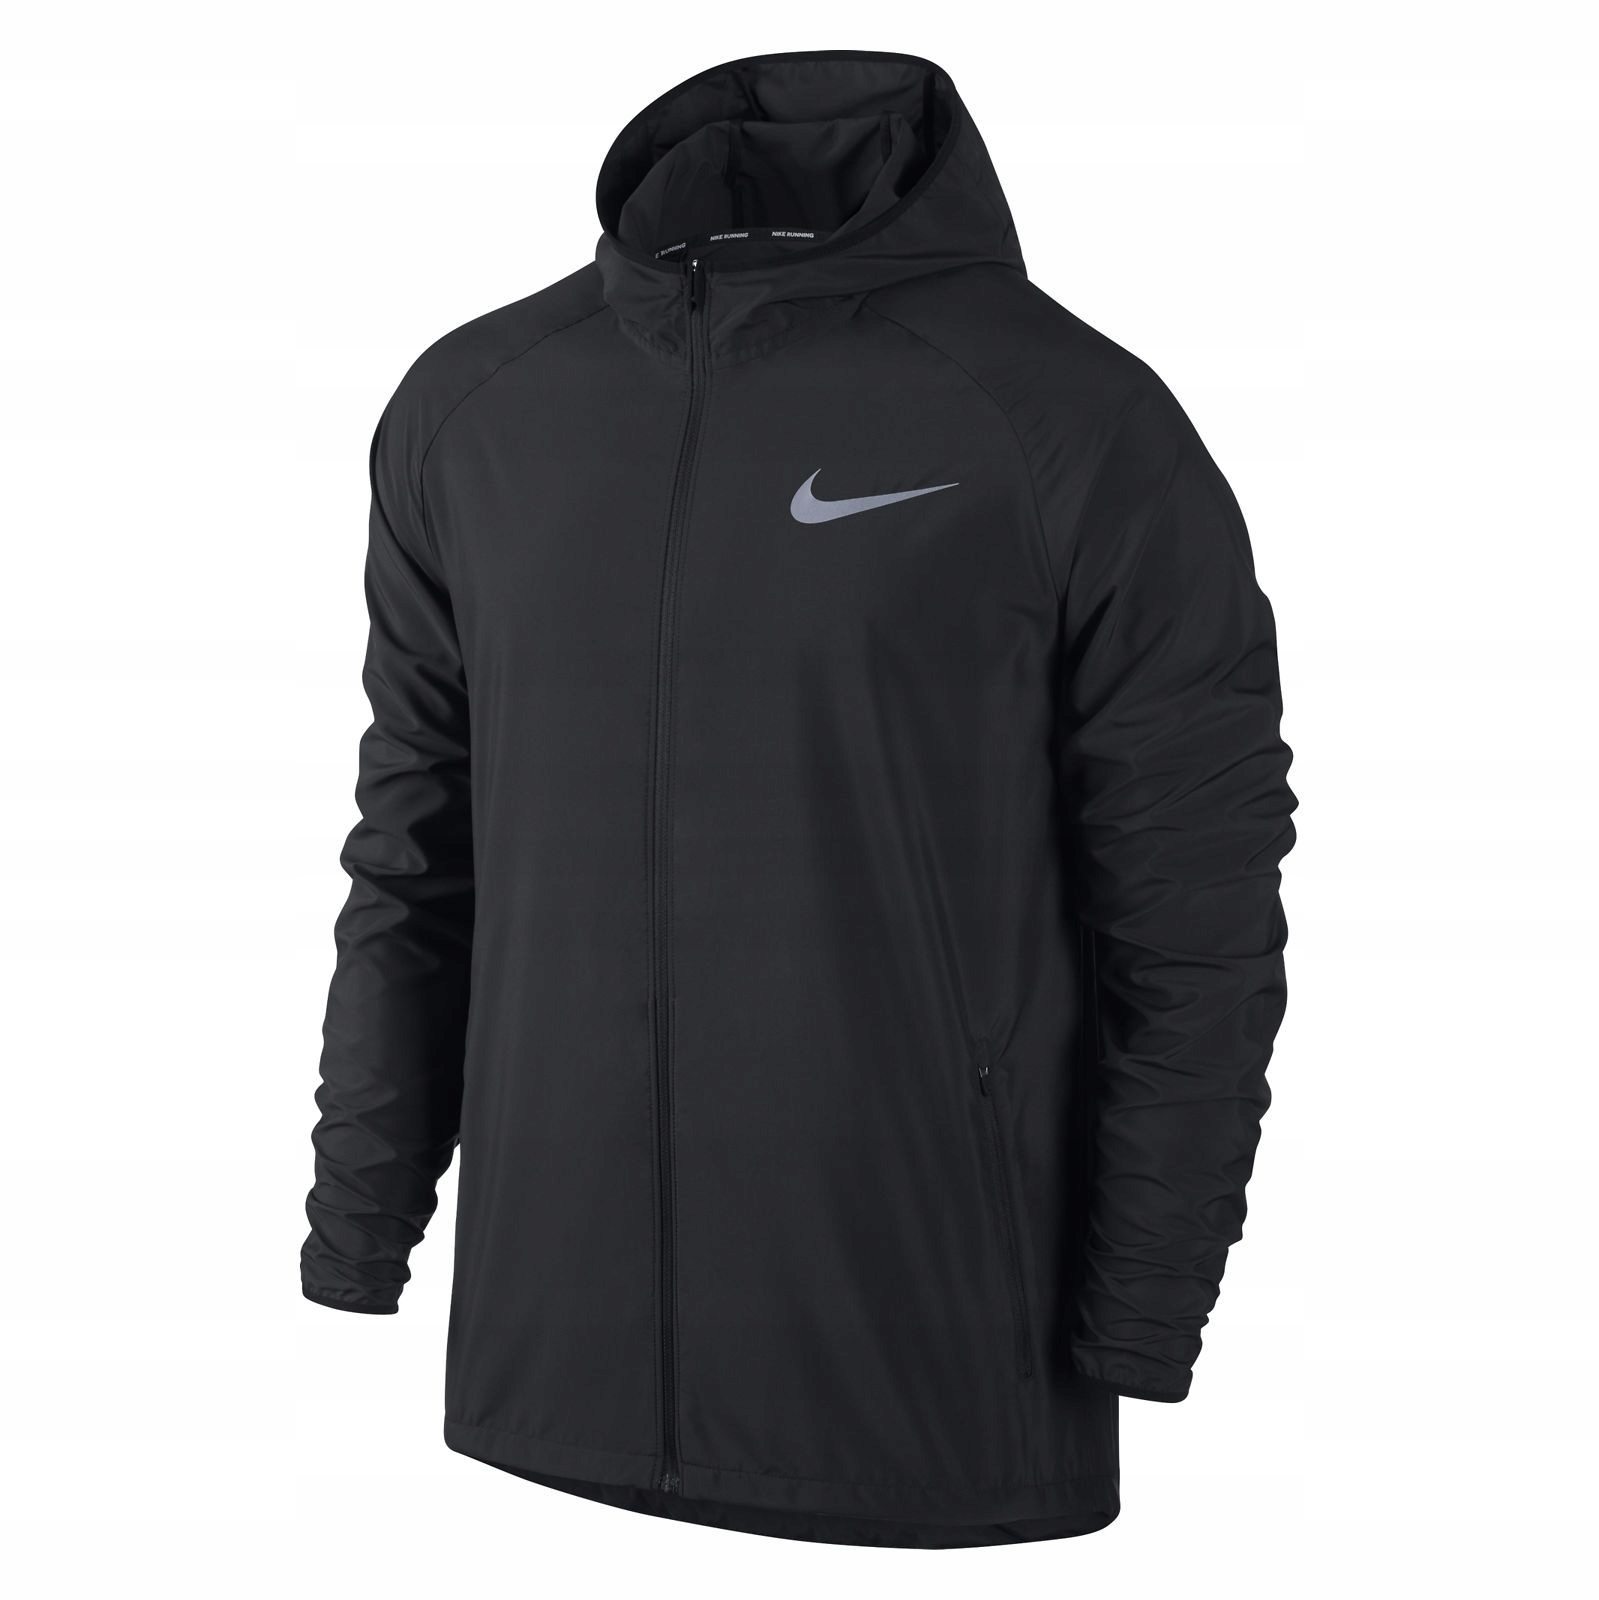 Męska kurtka do biegania Nike Essential Jacket XL